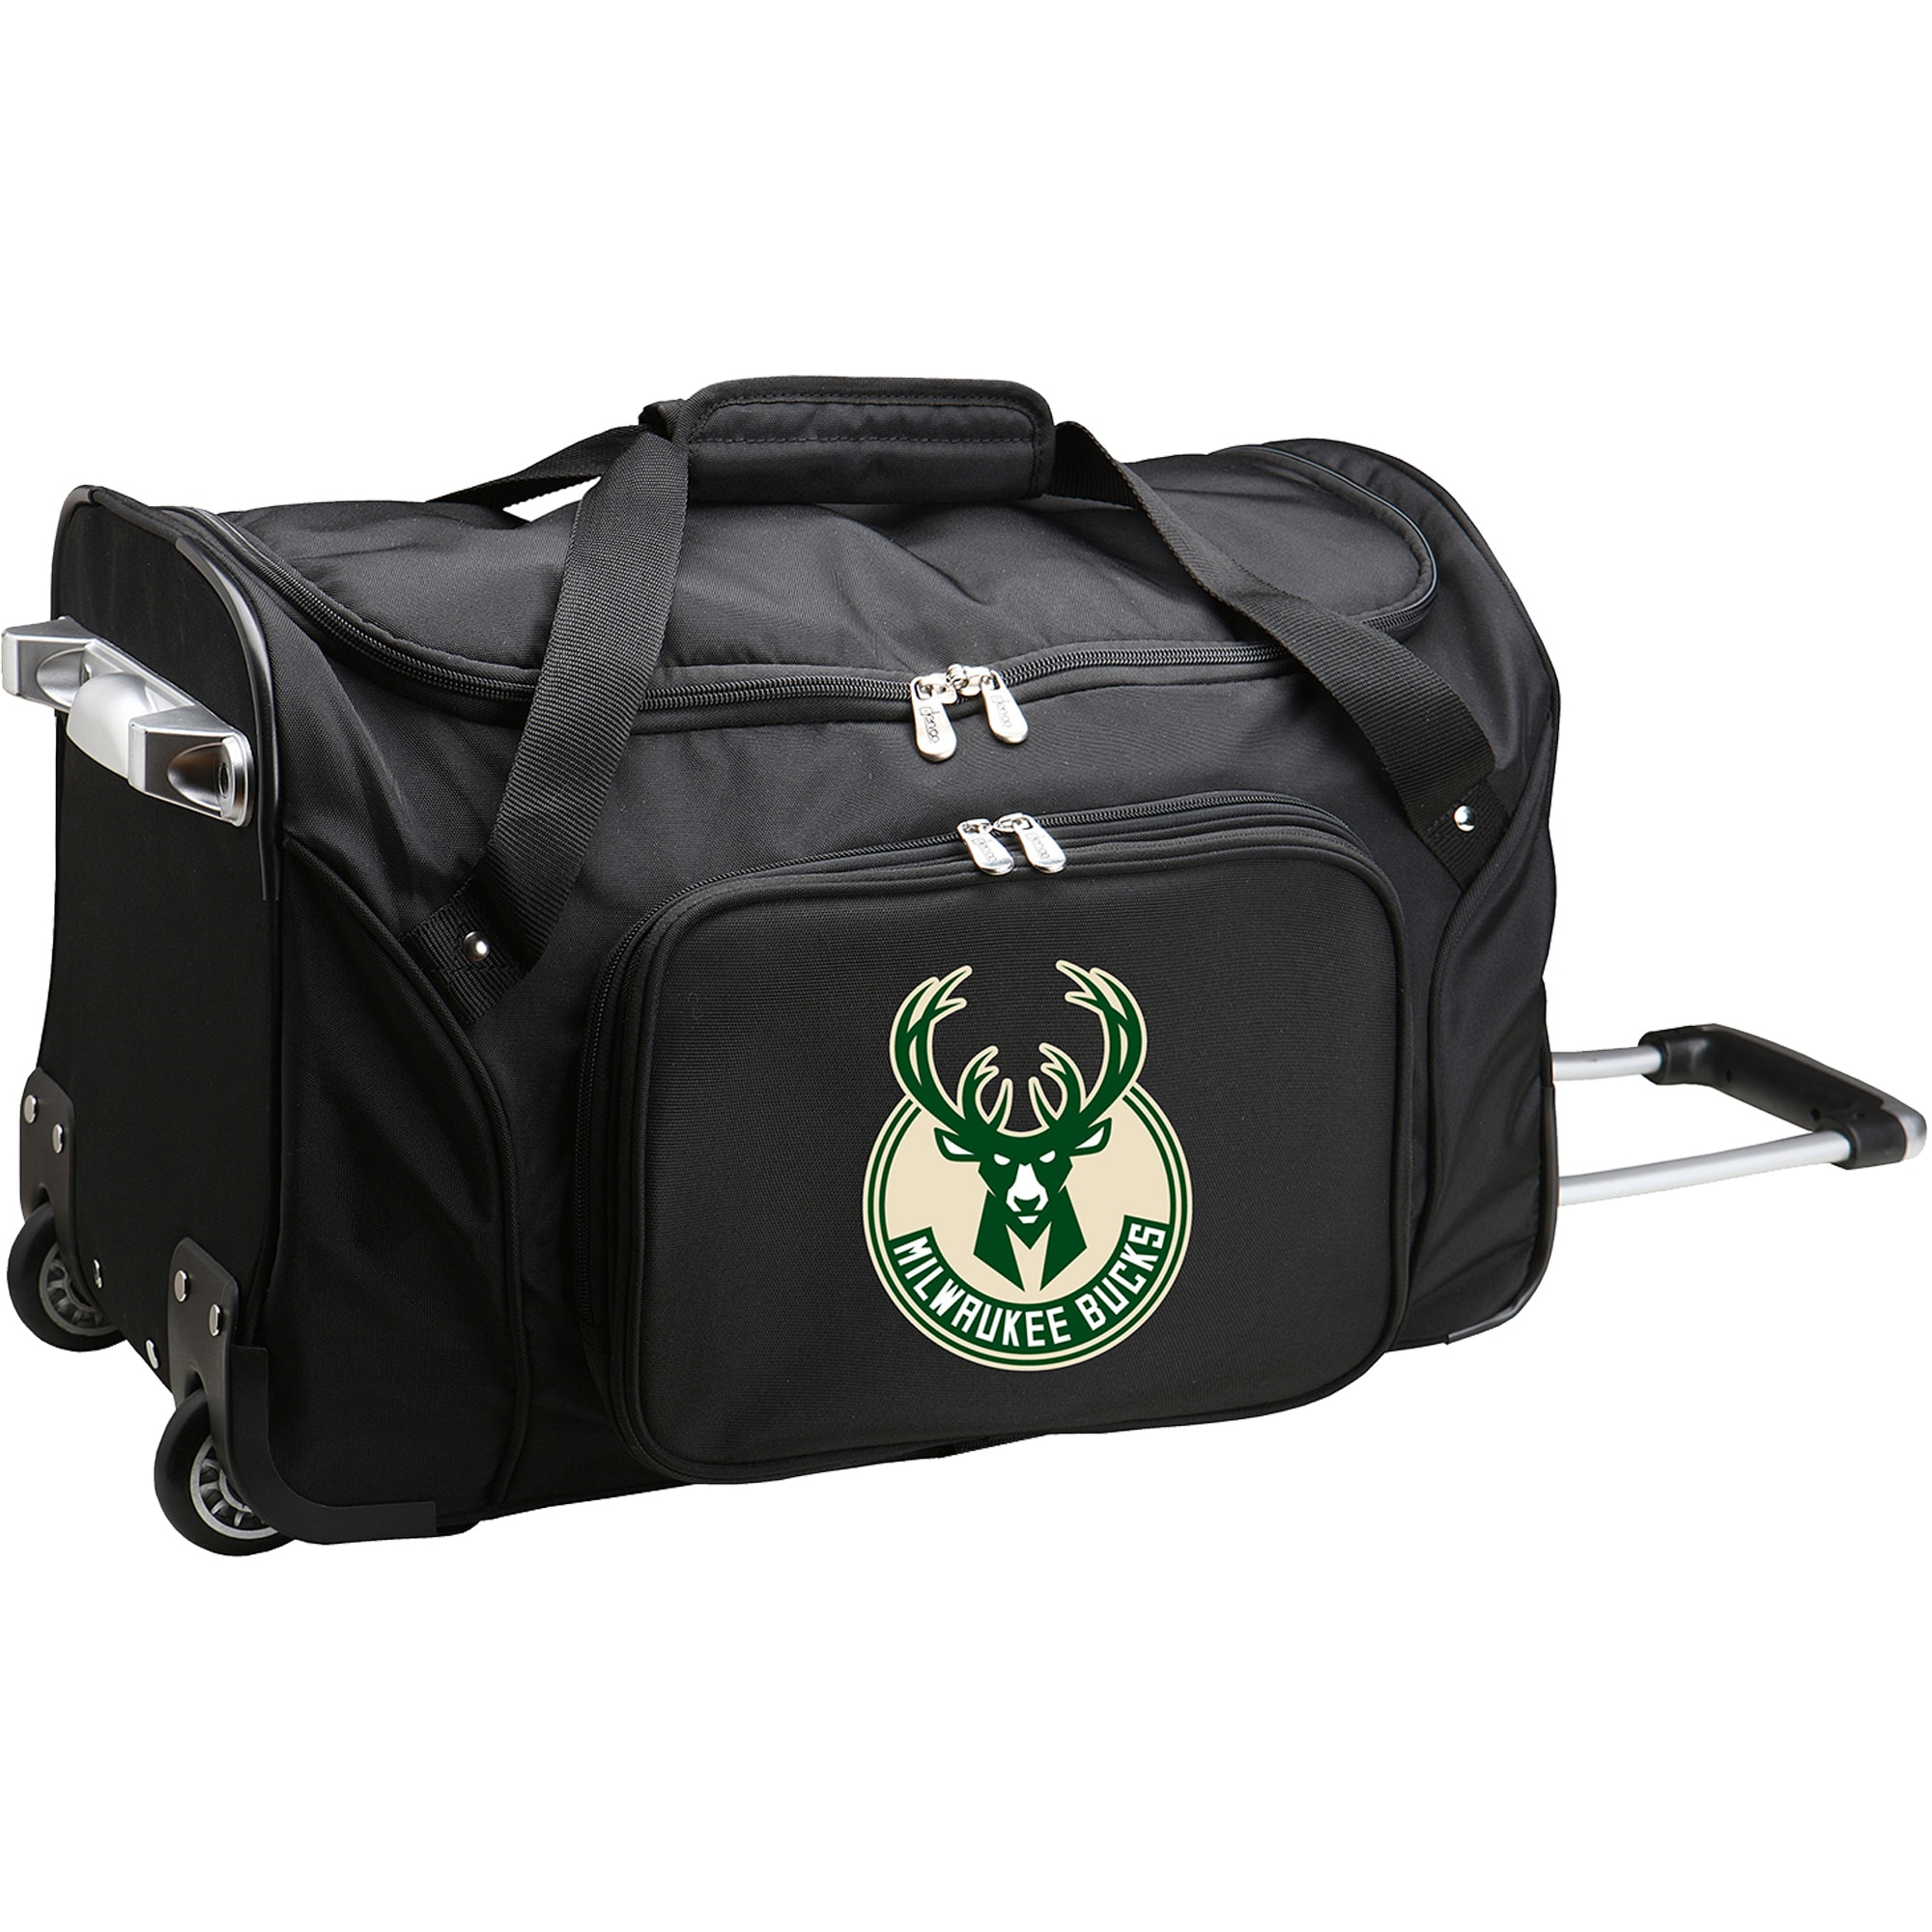 "Milwaukee Bucks 22"" 2-Wheeled Duffel Bag - Black"